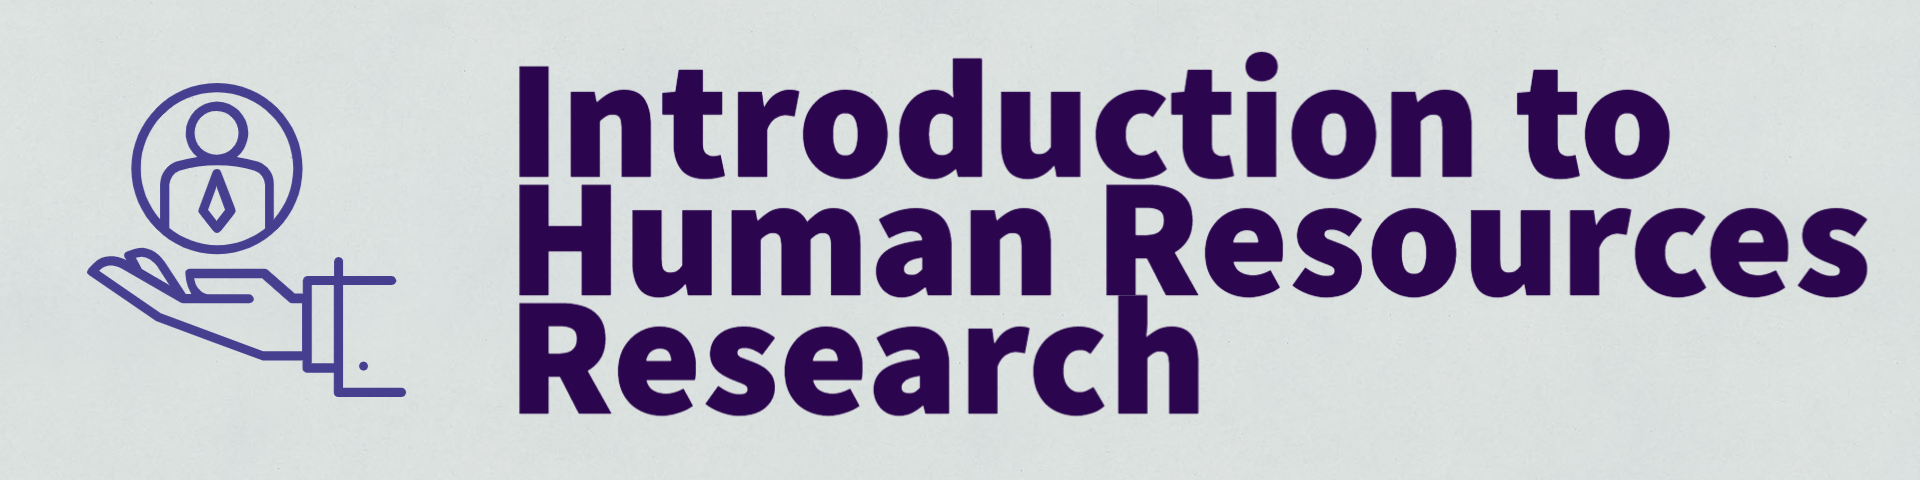 Introduction to Human Resources Research